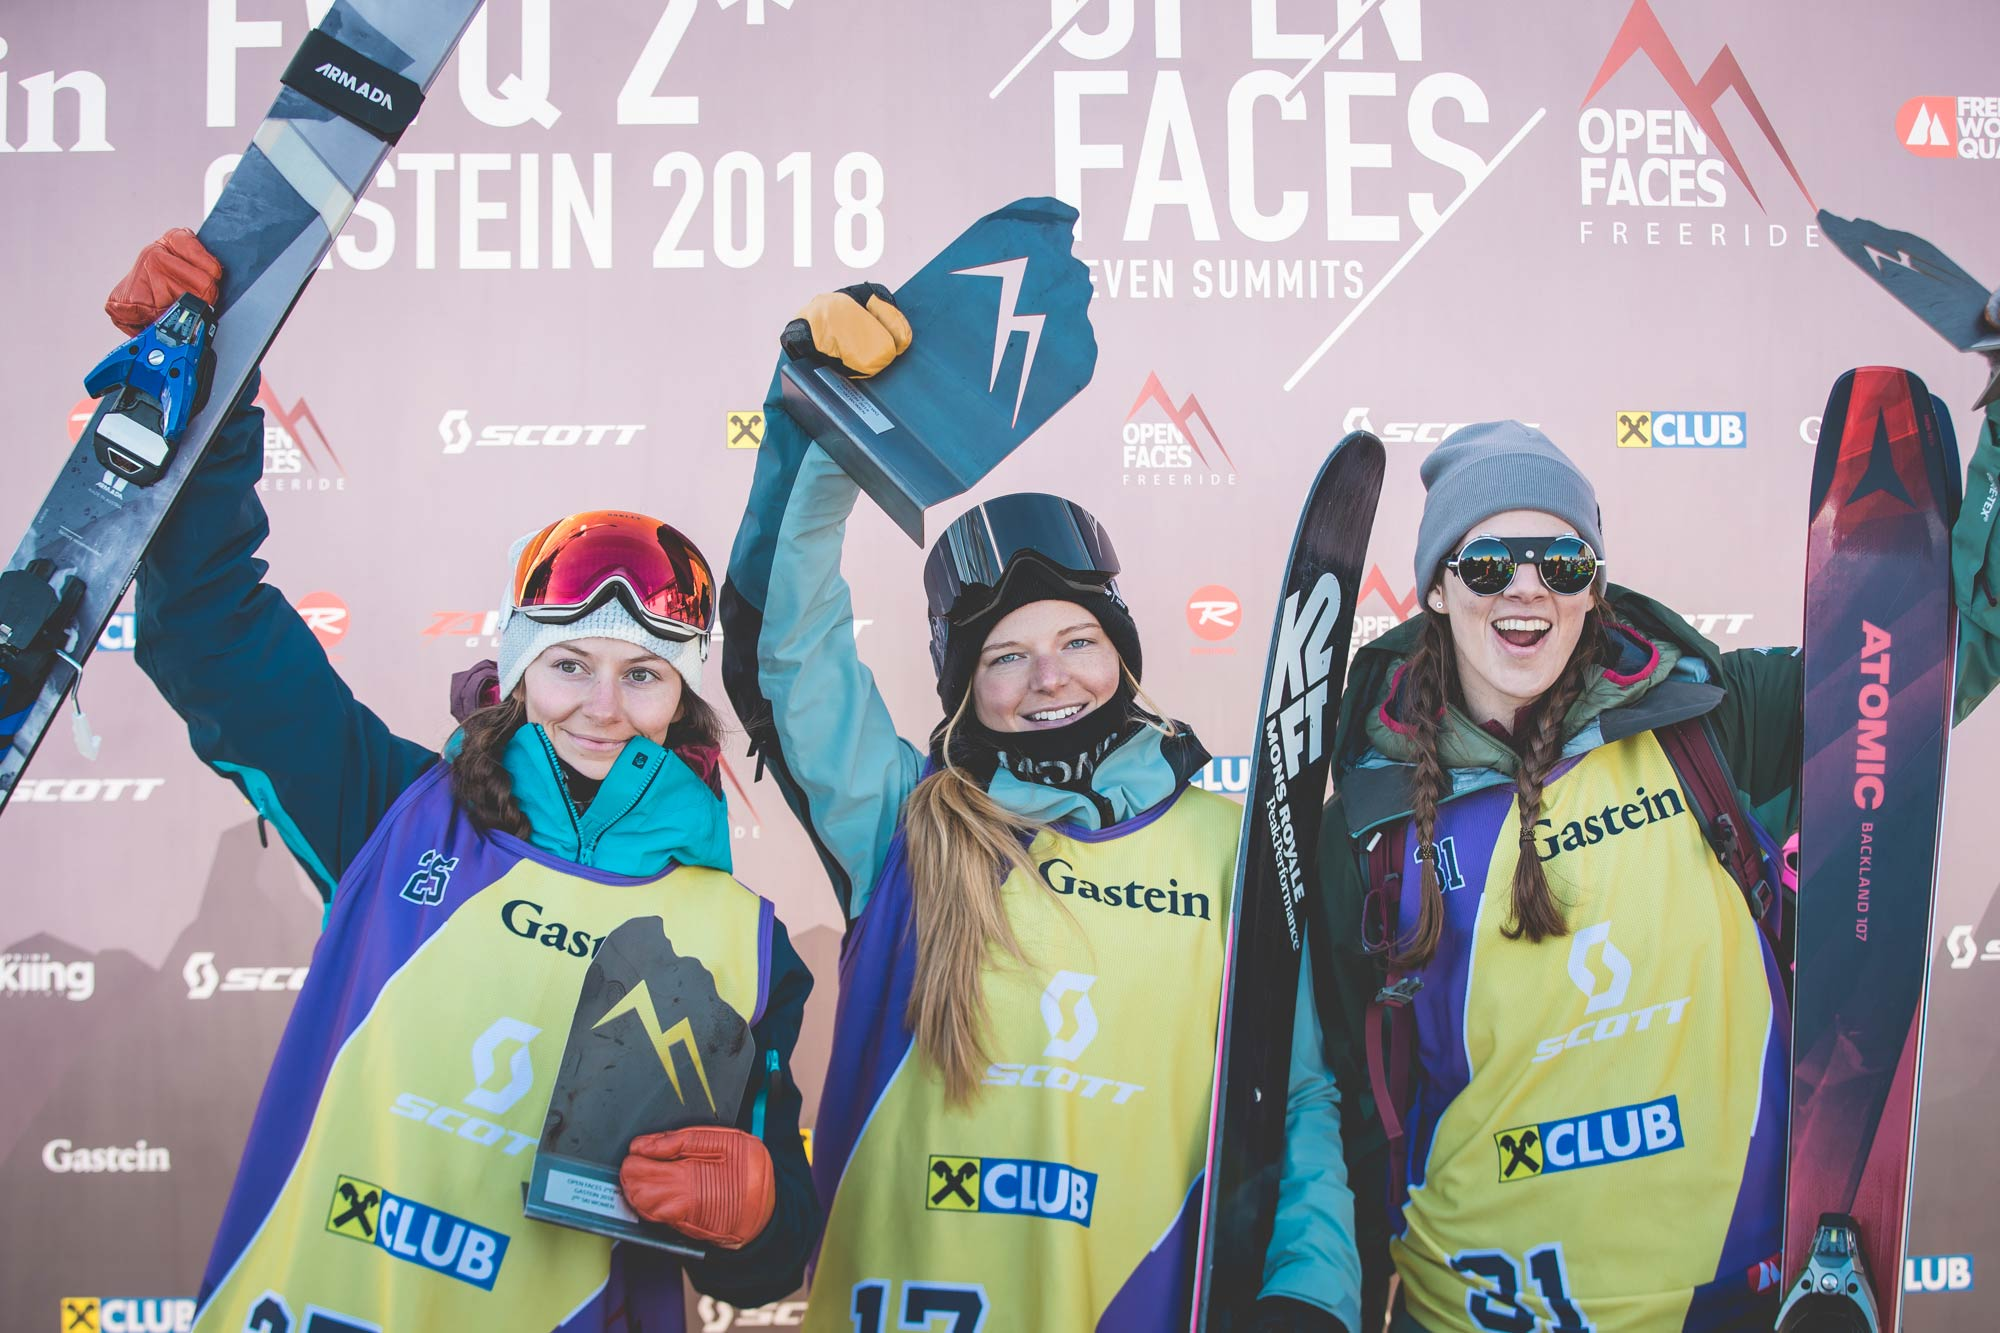 Die Top drei Frauen beim Open Faces Freeride Contest in Gastein (2018): Malene Madsen, Birgit Ertl und Jacoba Kriechmayr - Foto: Open Faces / M. Knoll